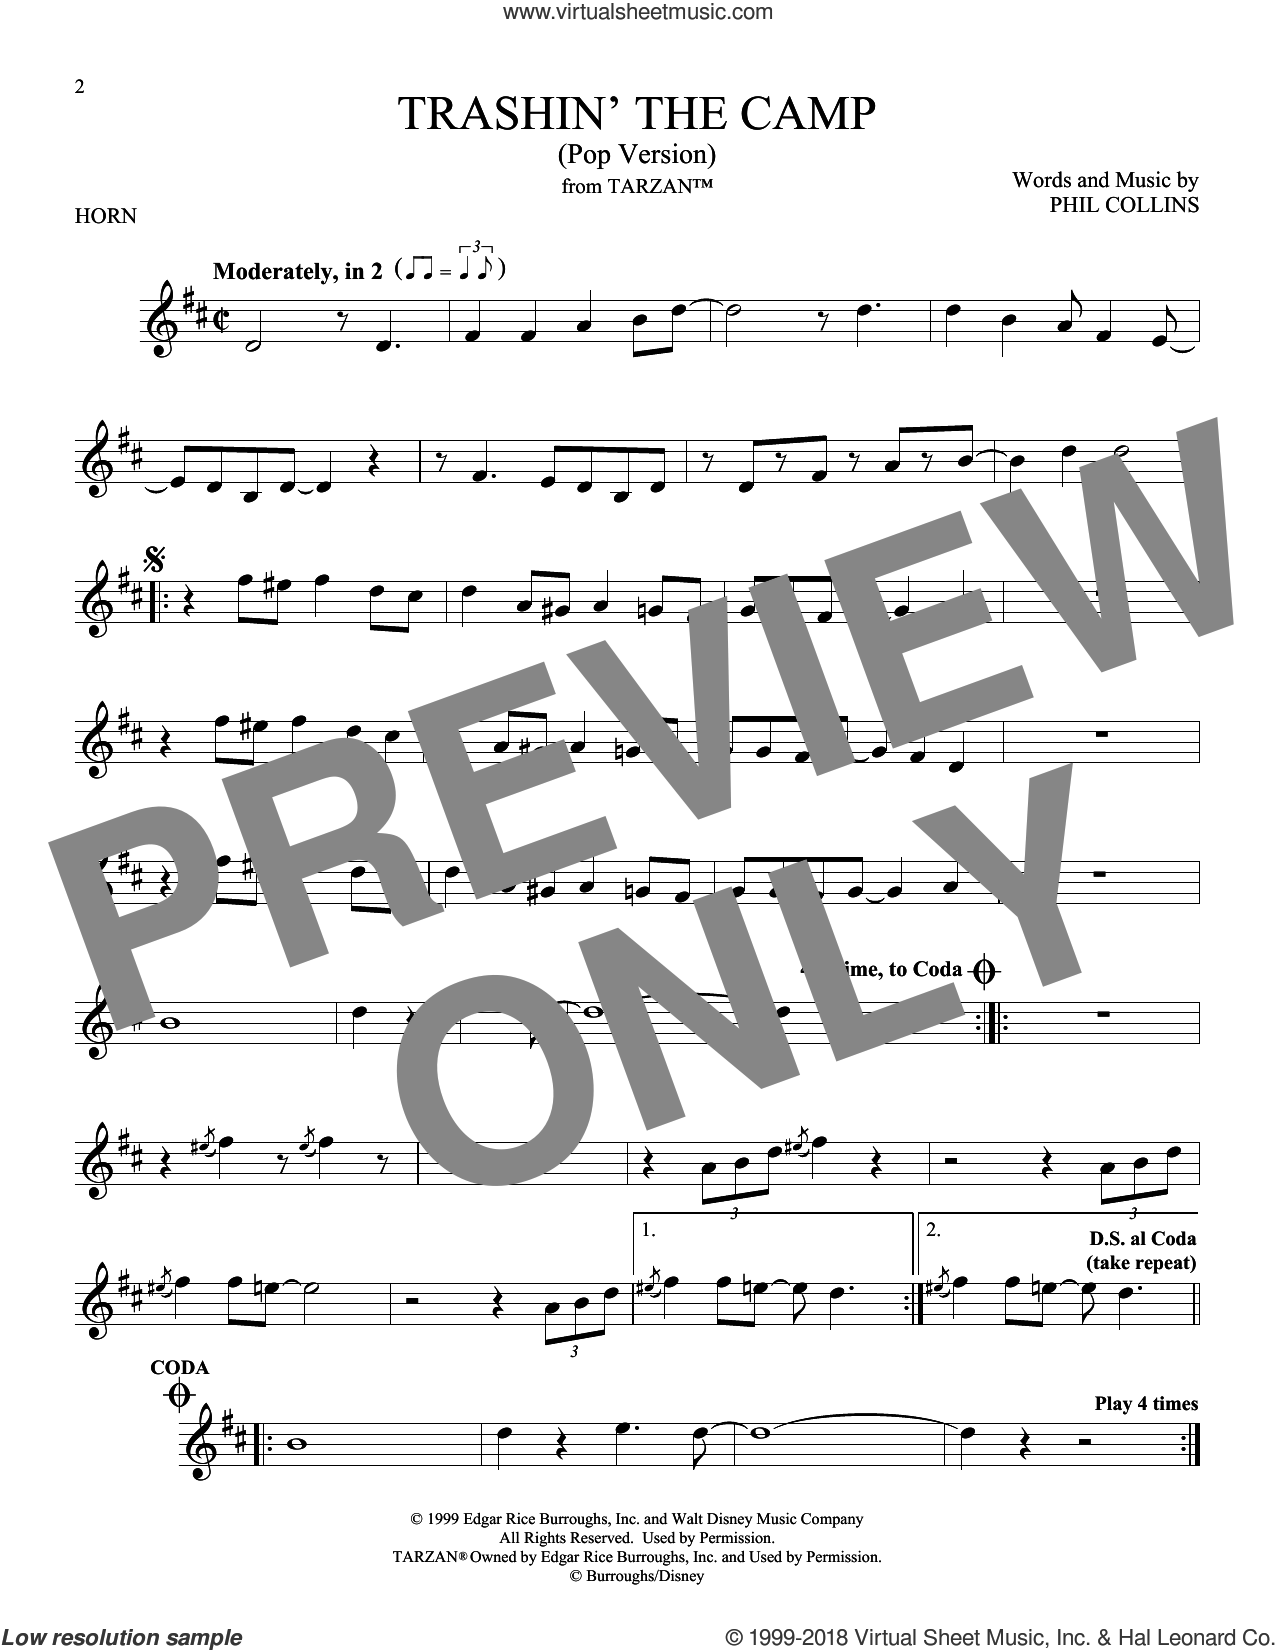 Trashin' The Camp (Pop Version) sheet music for horn solo by Phil Collins, intermediate skill level